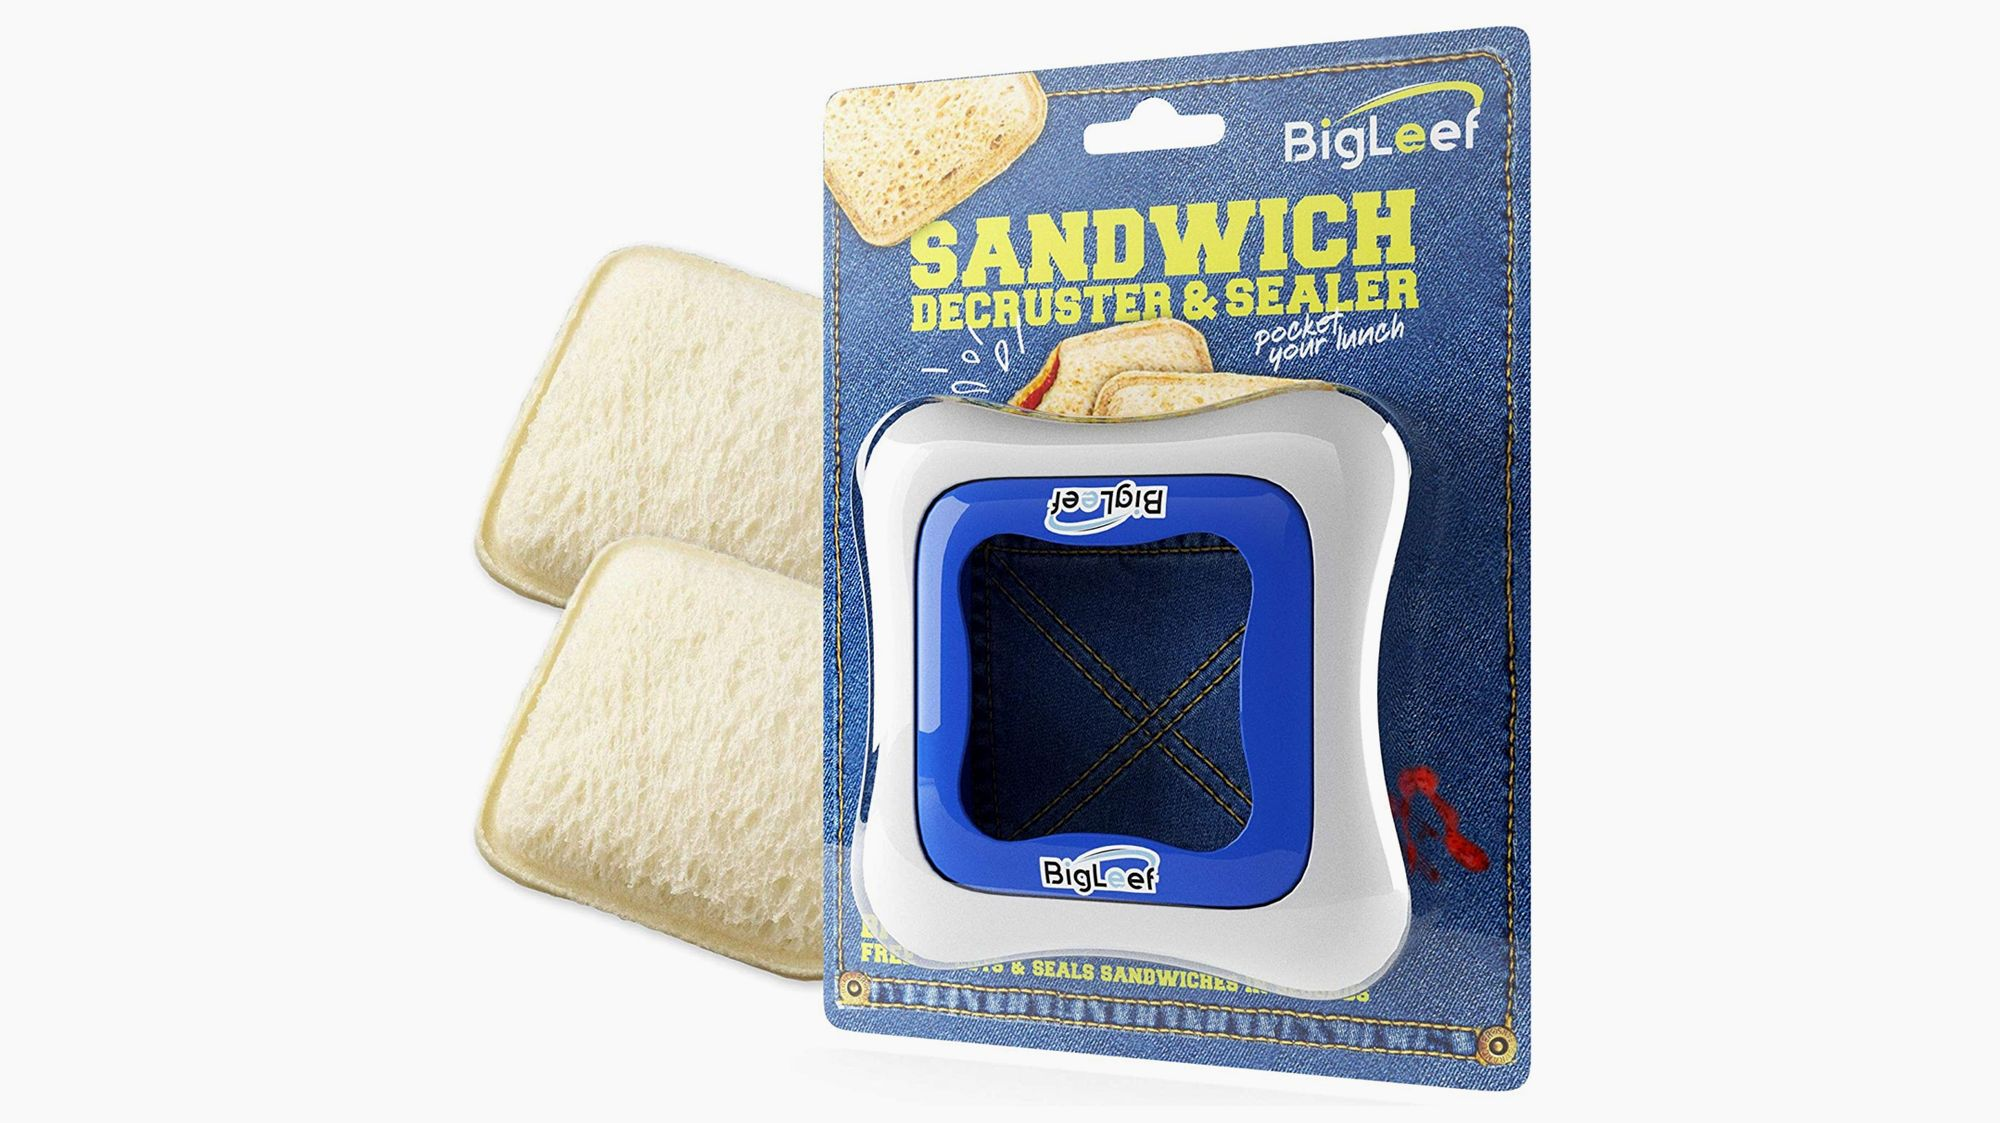 Make Your Own Uncrustables With This Handy Sandwich Decruster and Sealer